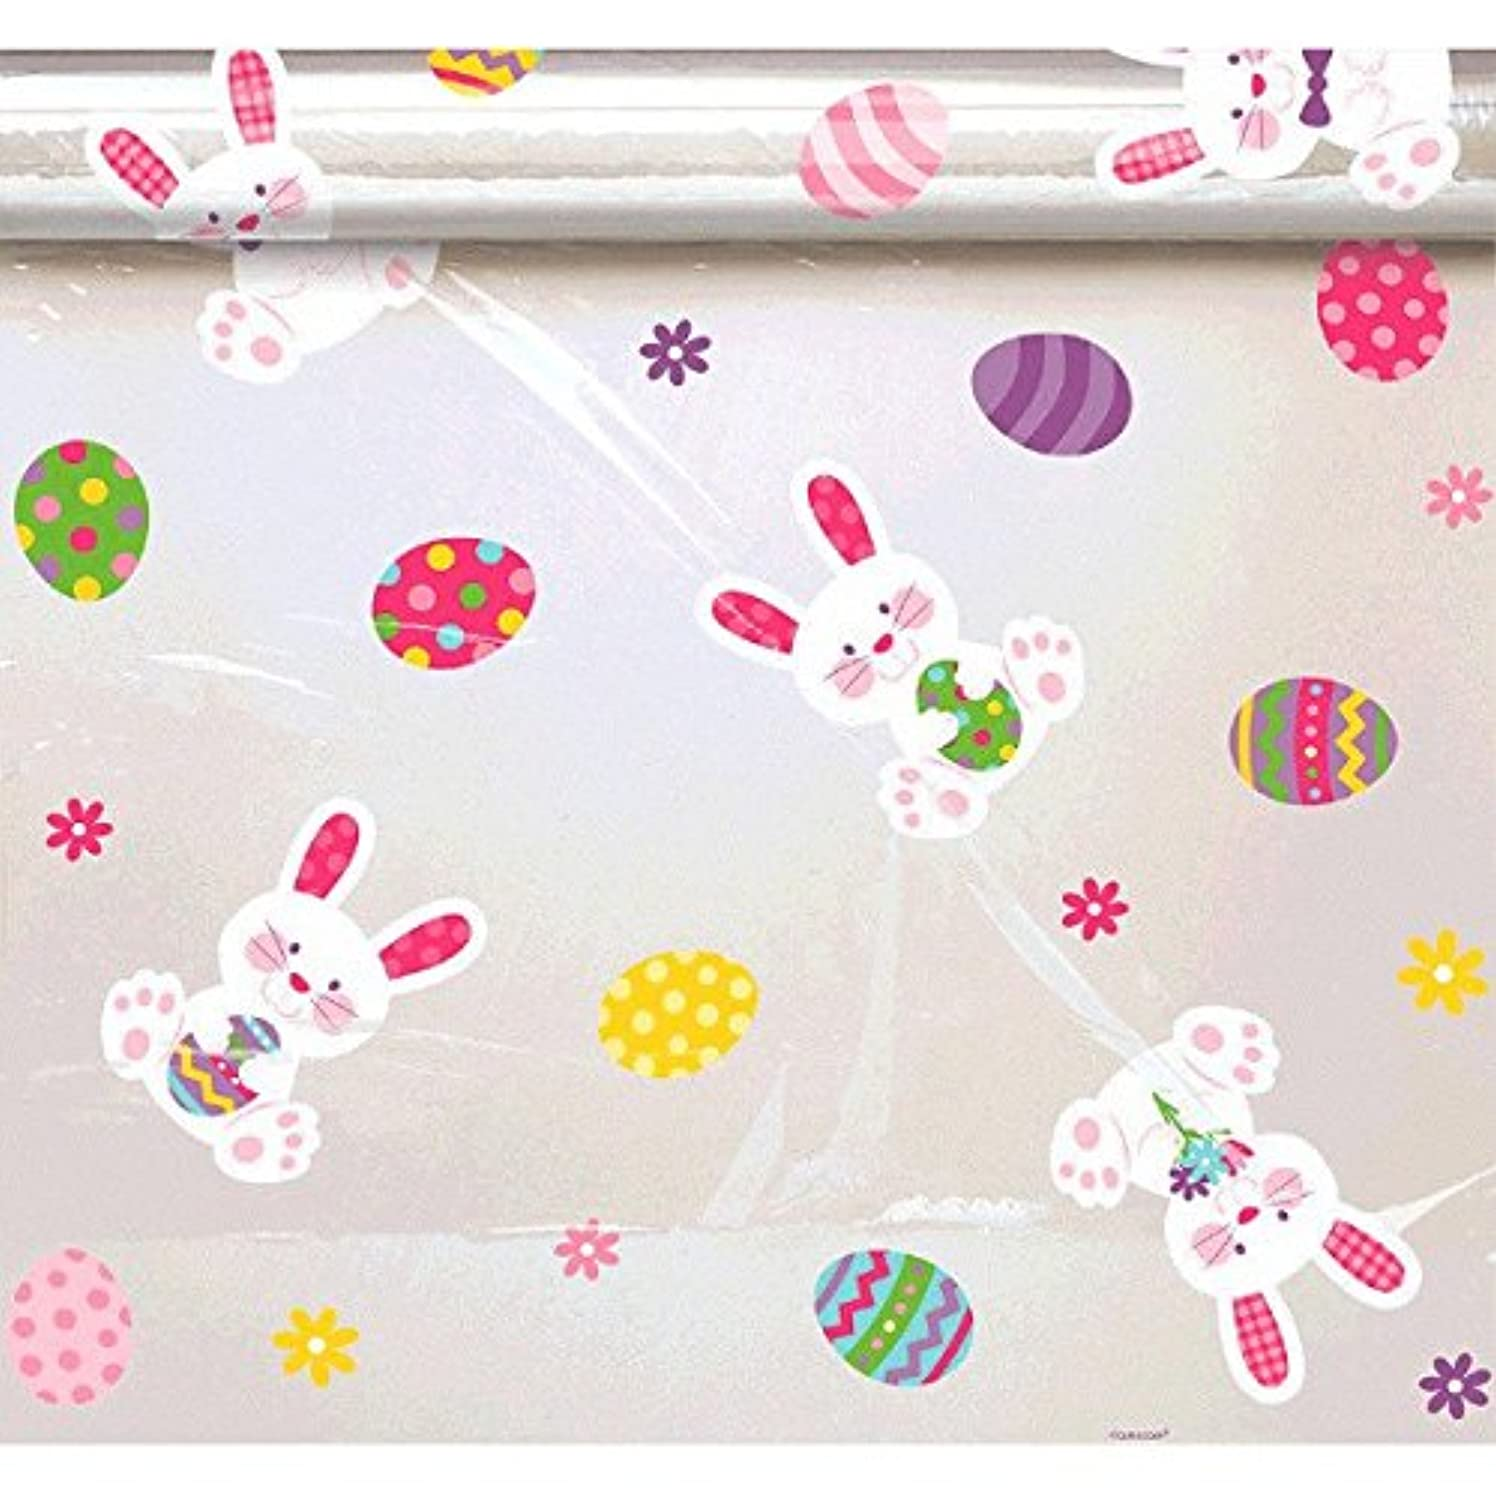 Amscan 180039 Easter Bunny Wrap, 7 1/2 feet x 40 inches, Multicolored